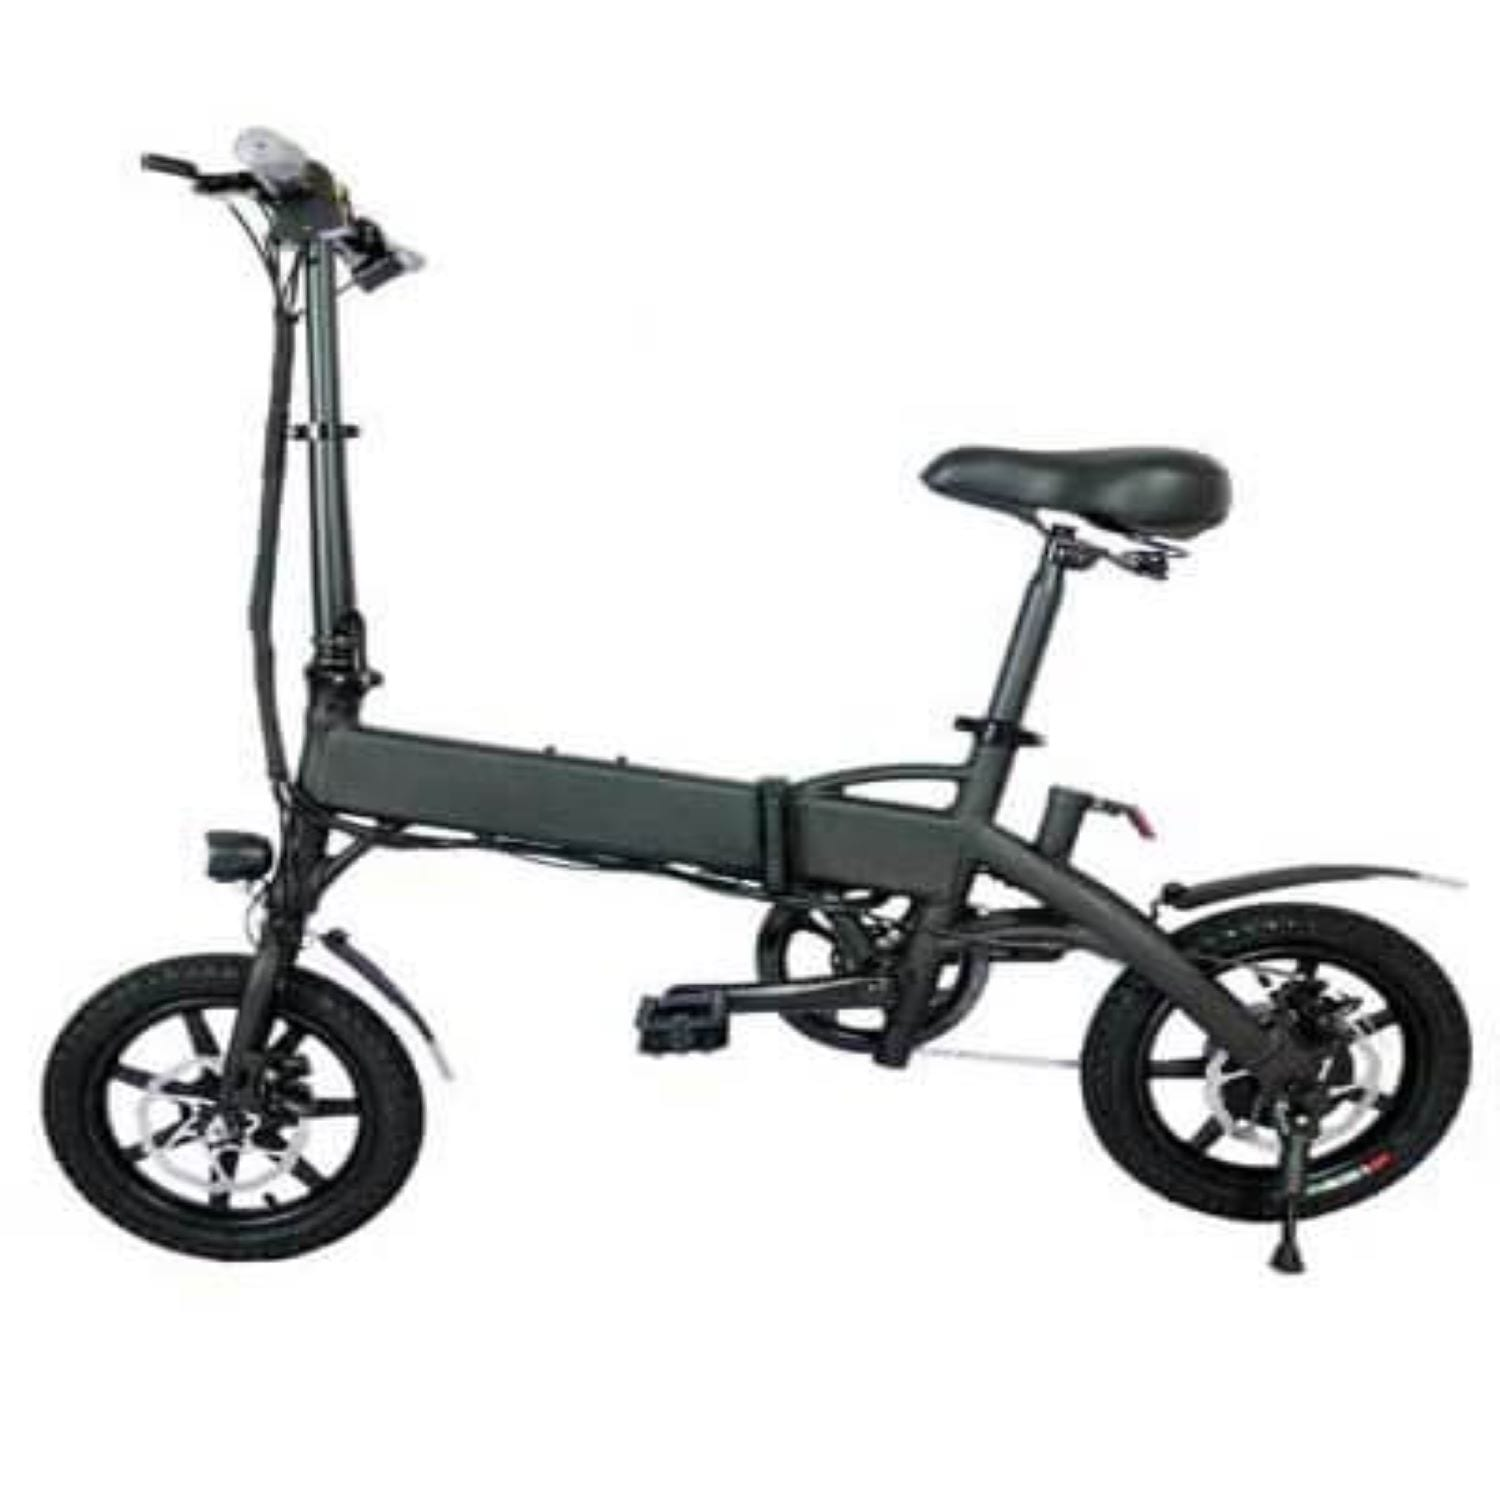 black-foldable-electric-bike